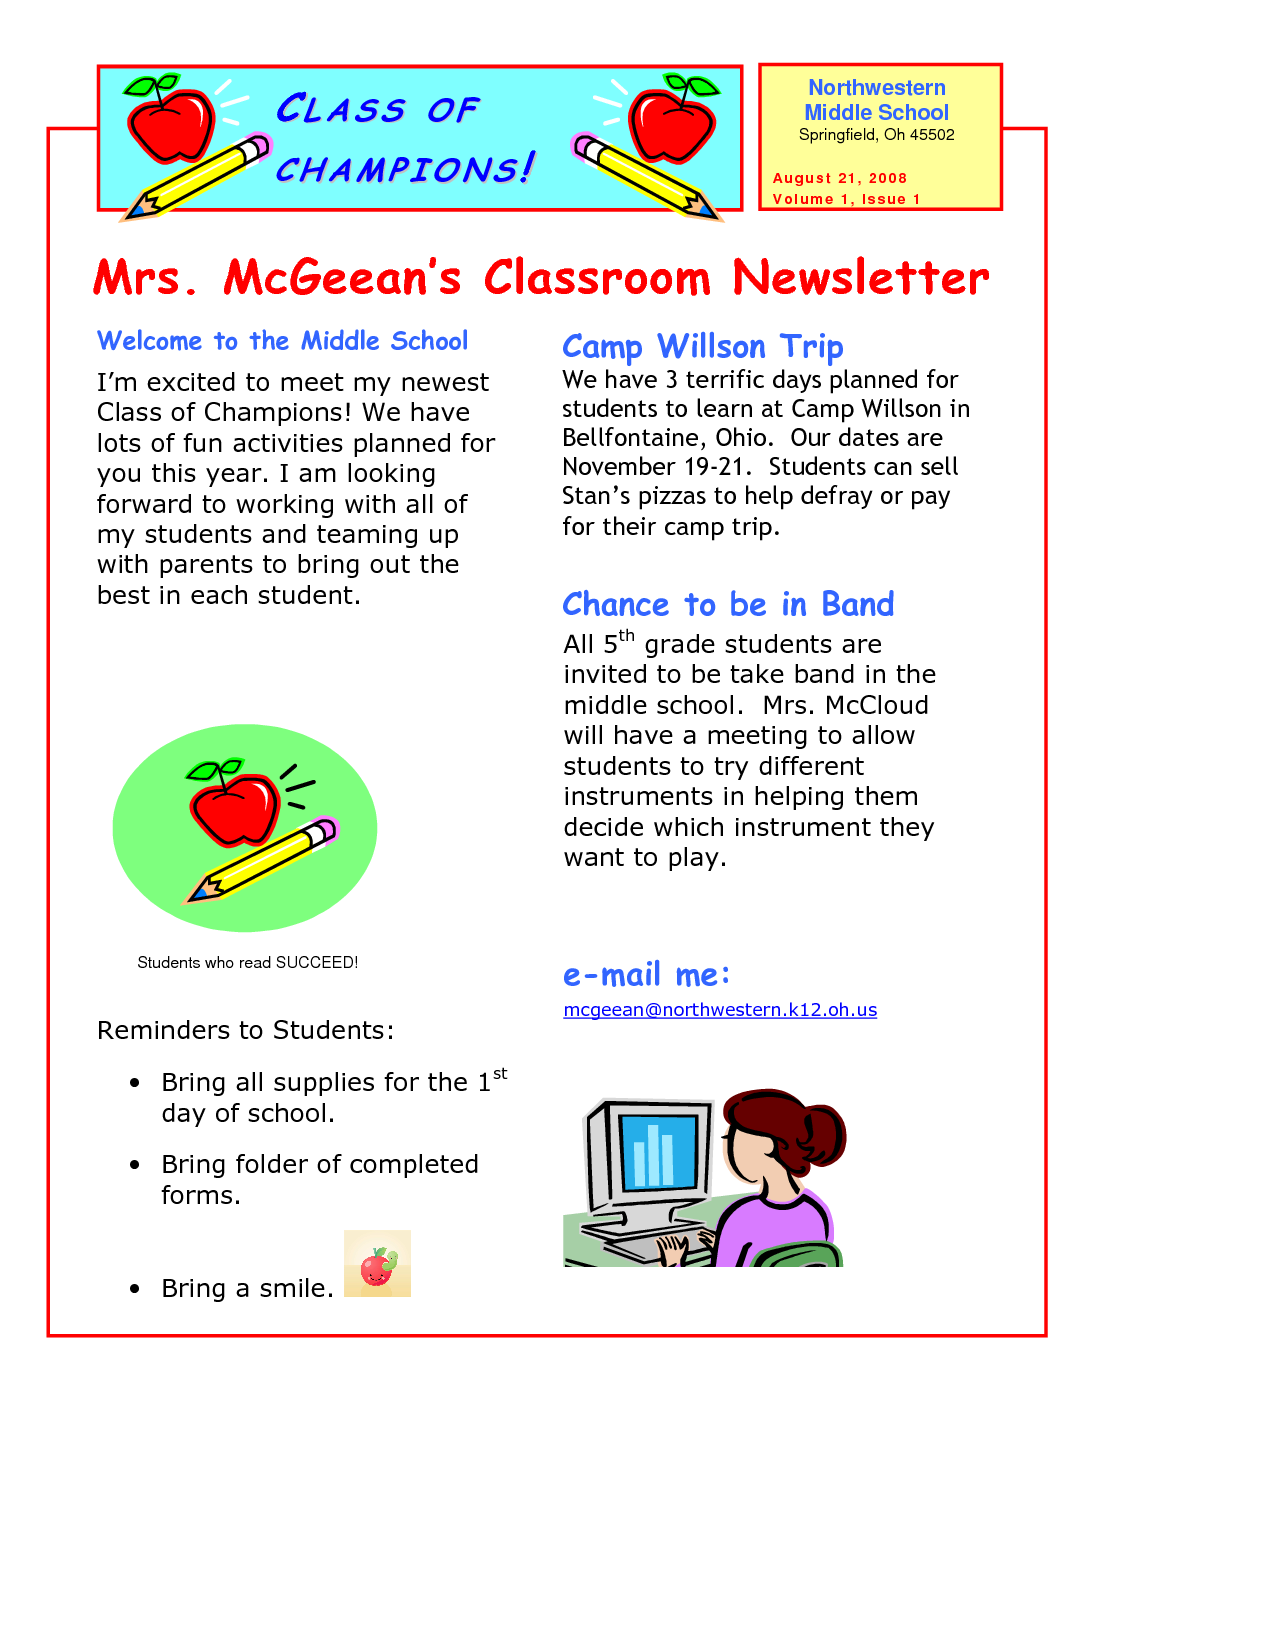 Clroom-Newsletter-Template-8 Teacher Newsletter Templates Free on teacher checklist template, fingerprint tree teacher gift template, free teacher brochure, free teacher clip art, free teacher business card, free teacher powerpoint templates, free teacher fonts, tree no leaves template, free teacher lesson plan book, training evaluation survey template, free teacher cartoons, free templates for teachers, free teacher graphics, cartoon tree powerpoint template, teacher anecdotal notes template, cute list template, blank chart template,